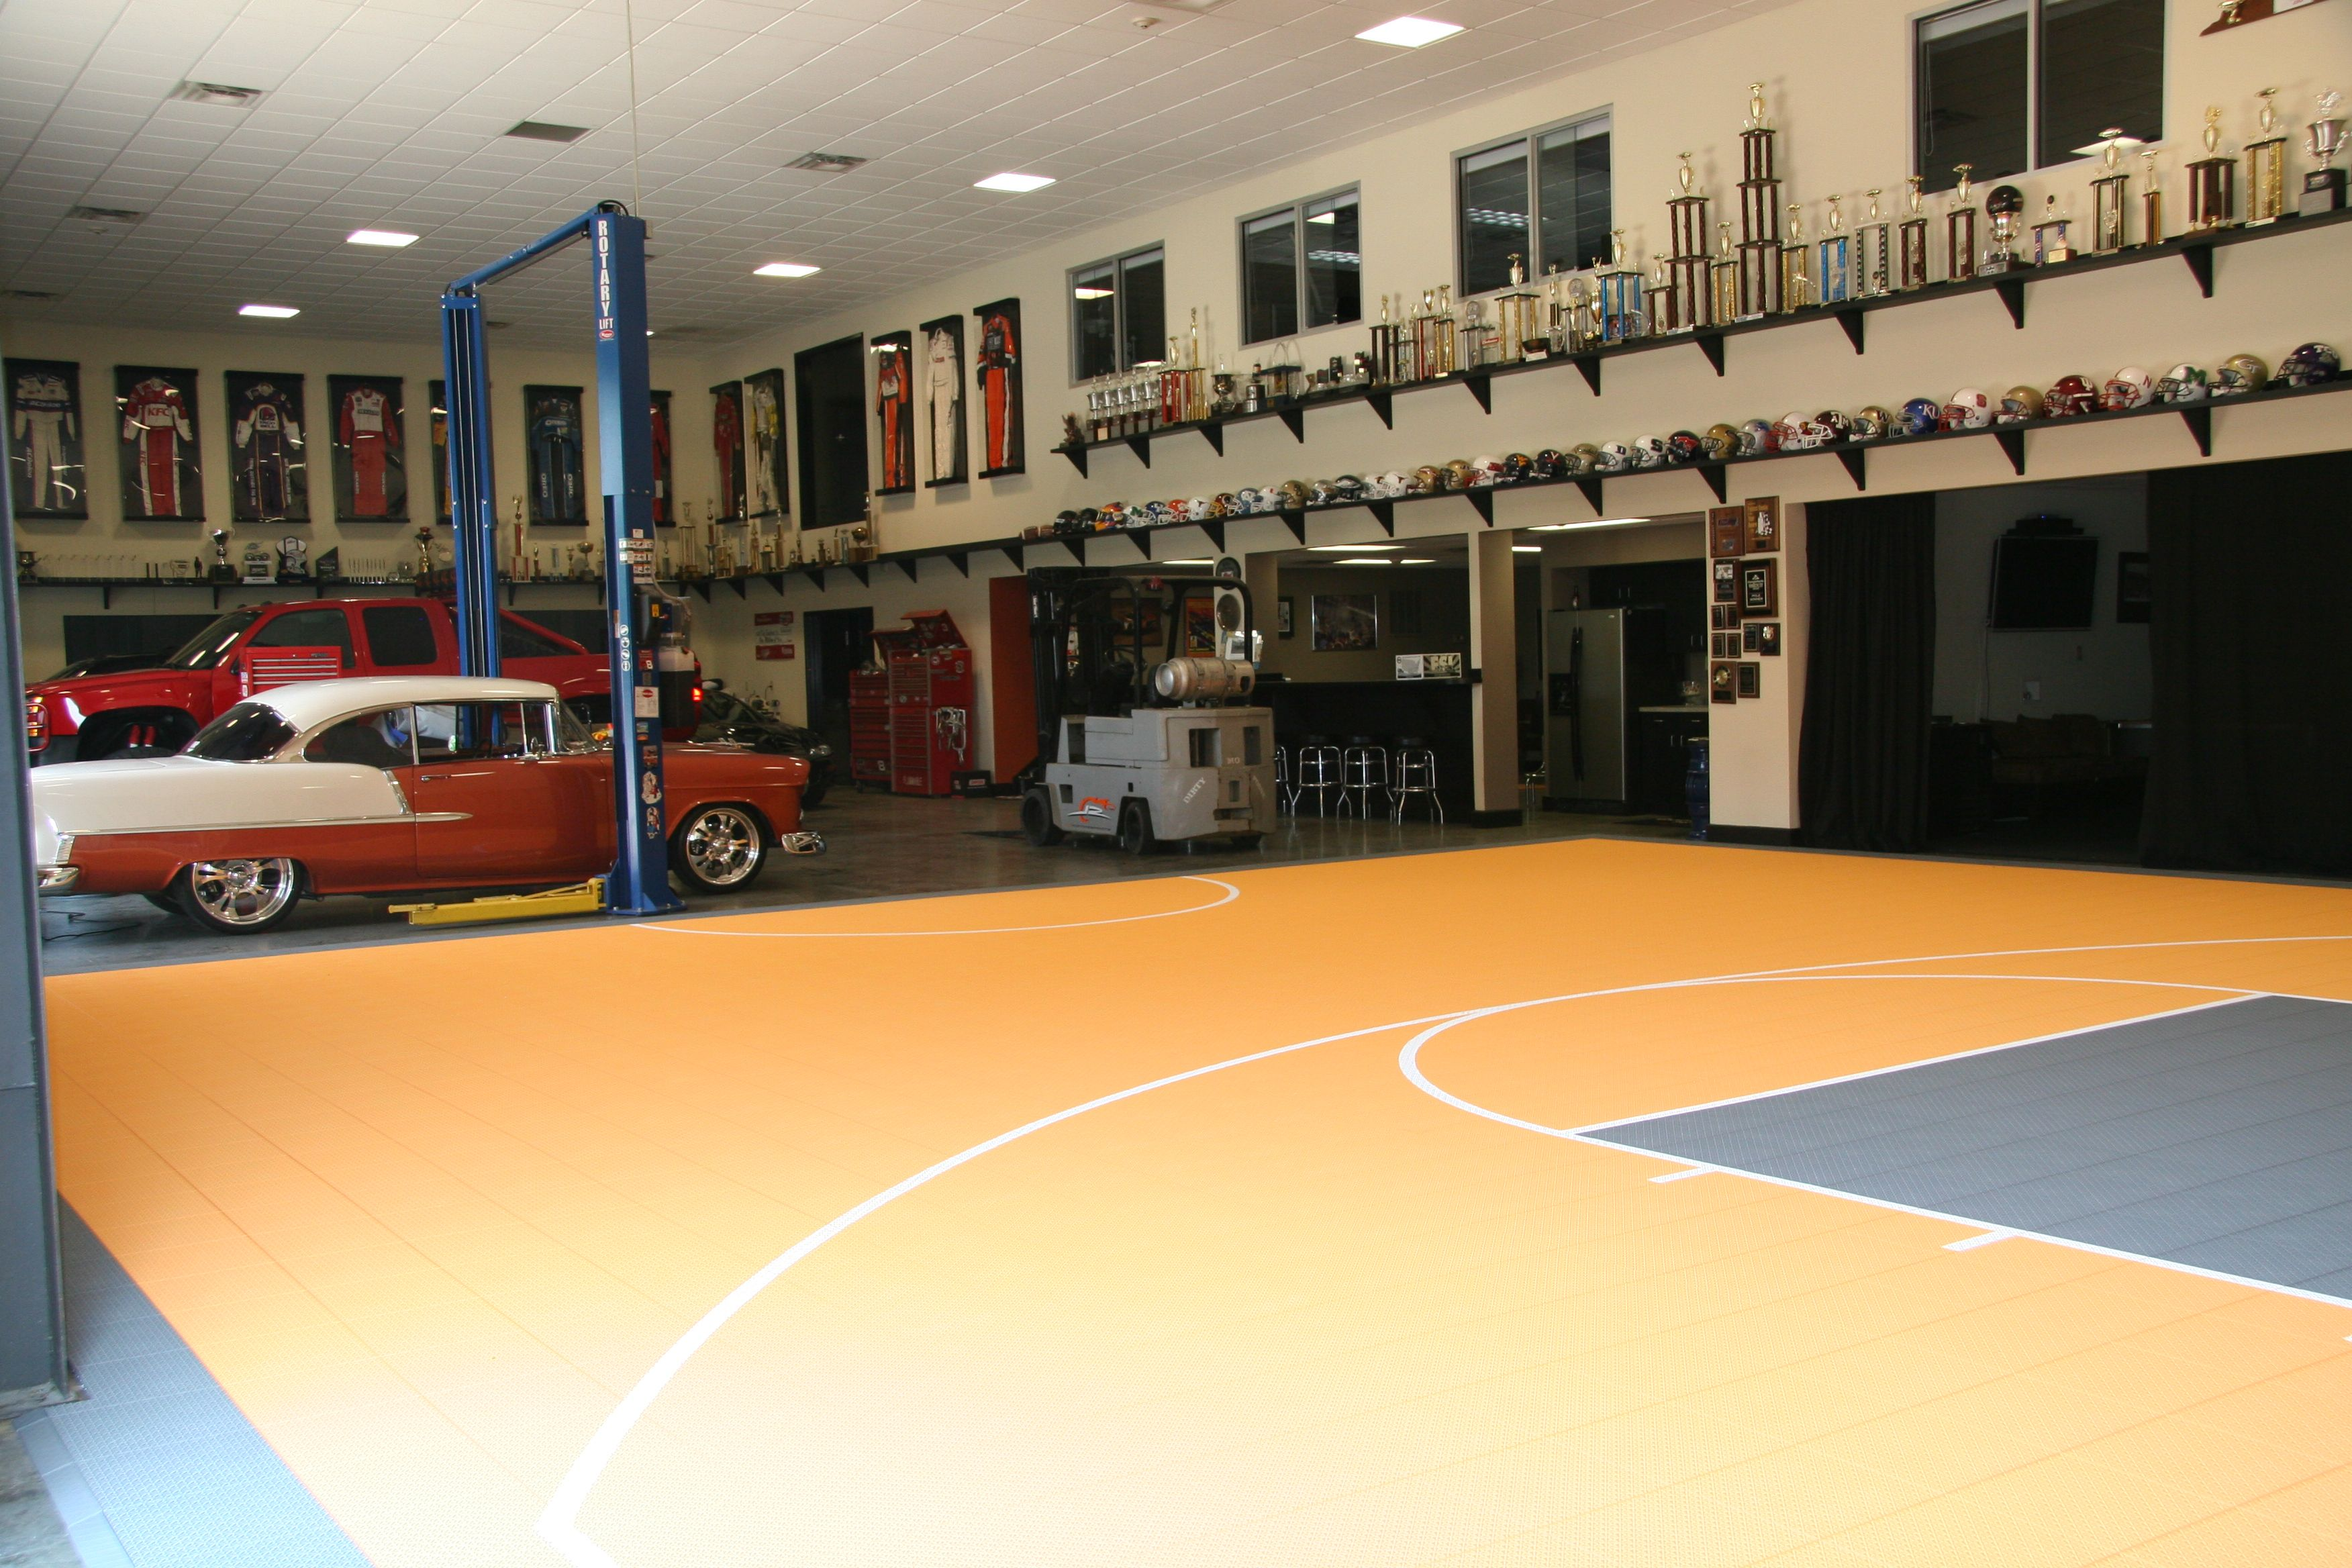 Indoor Basketball Court In A Large Warehouse Type Garage Basketball Basketball Court Indoor Basketball Court